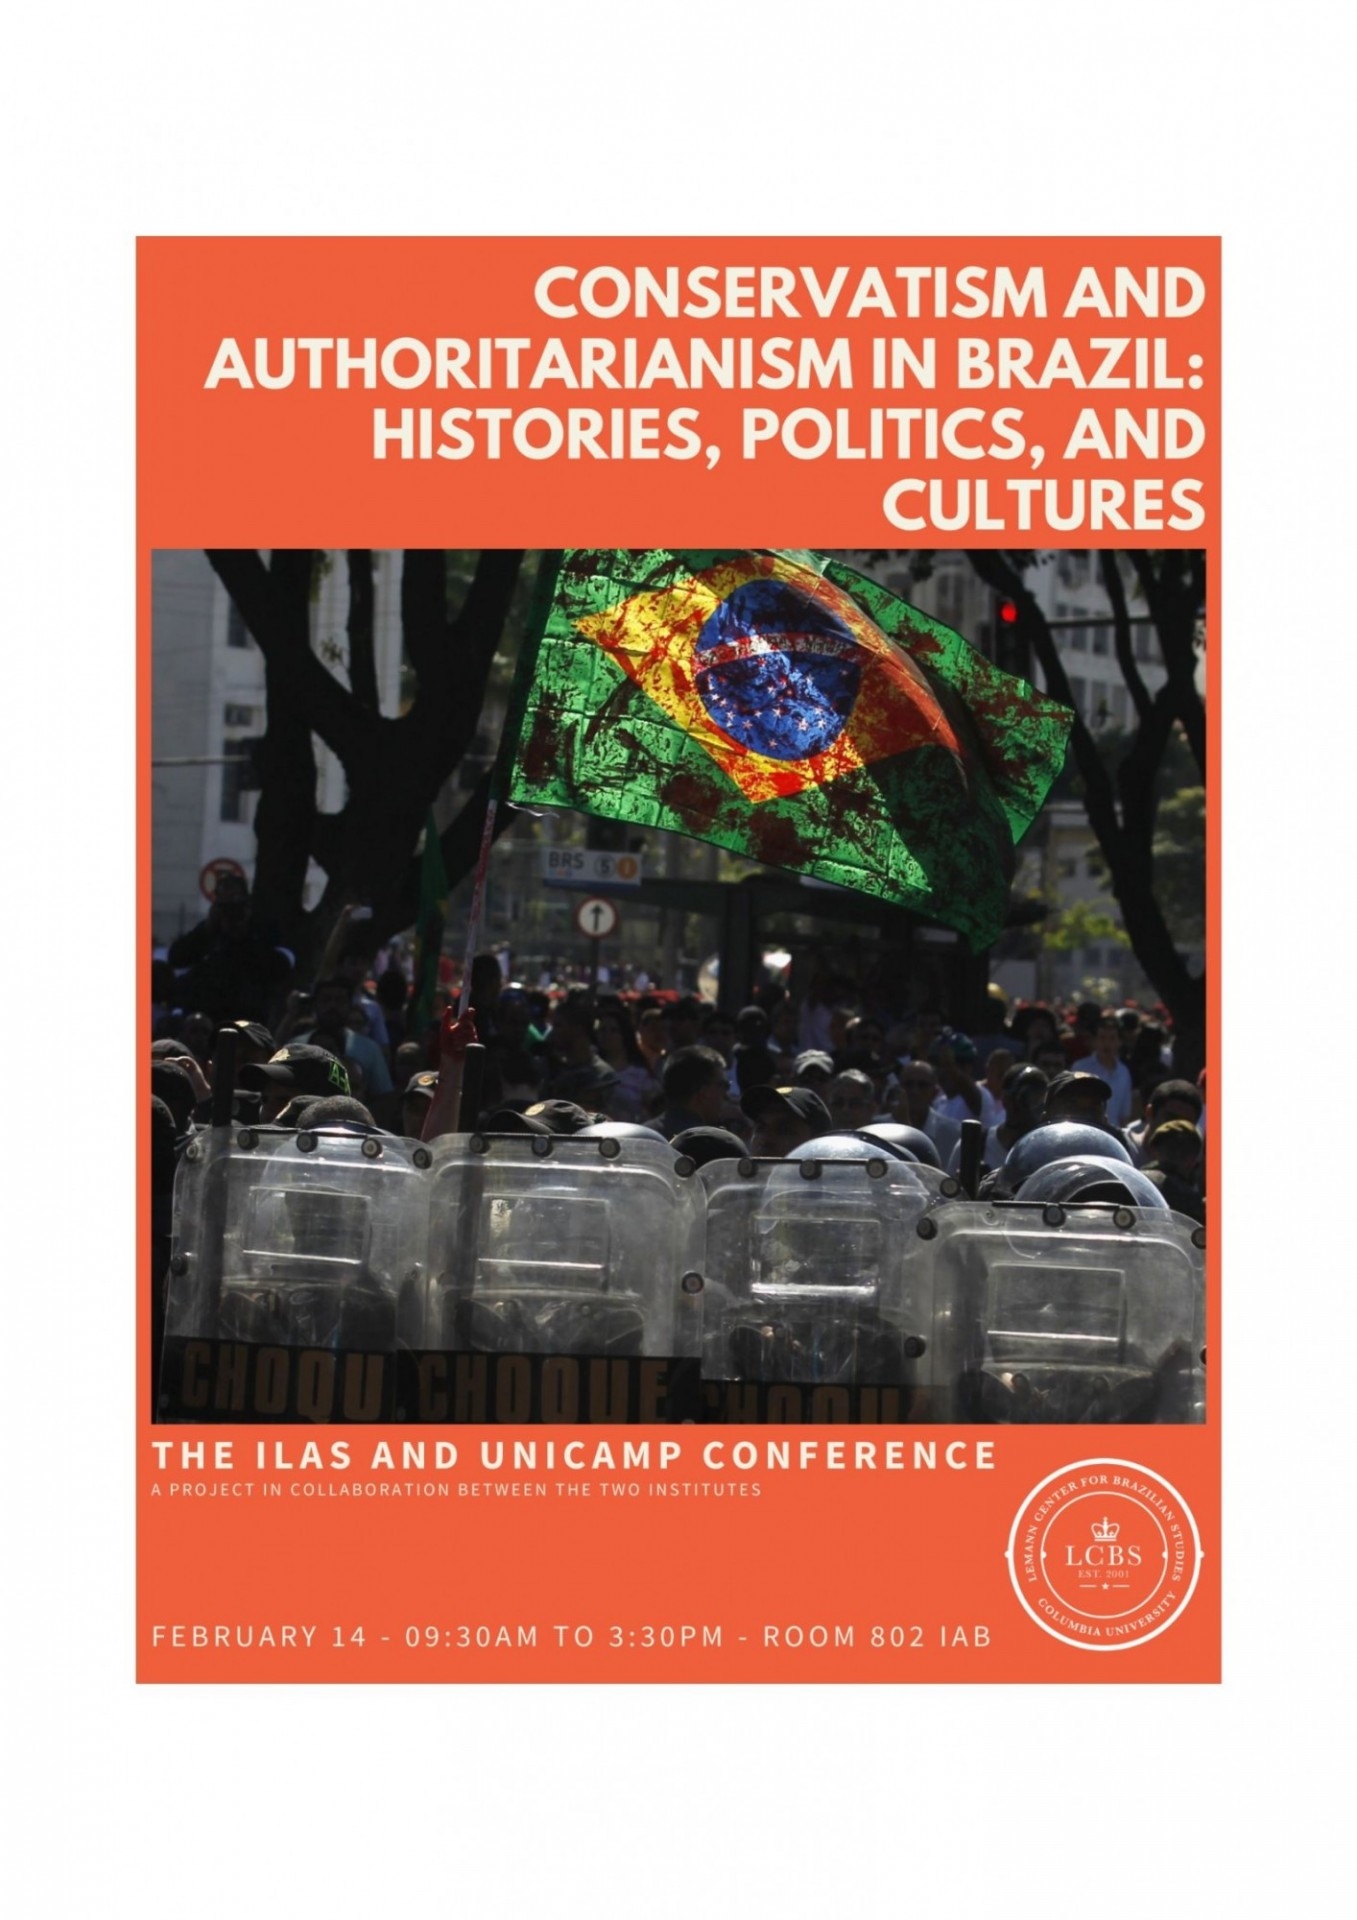 Conservatism and Authoritarianism in Brazil